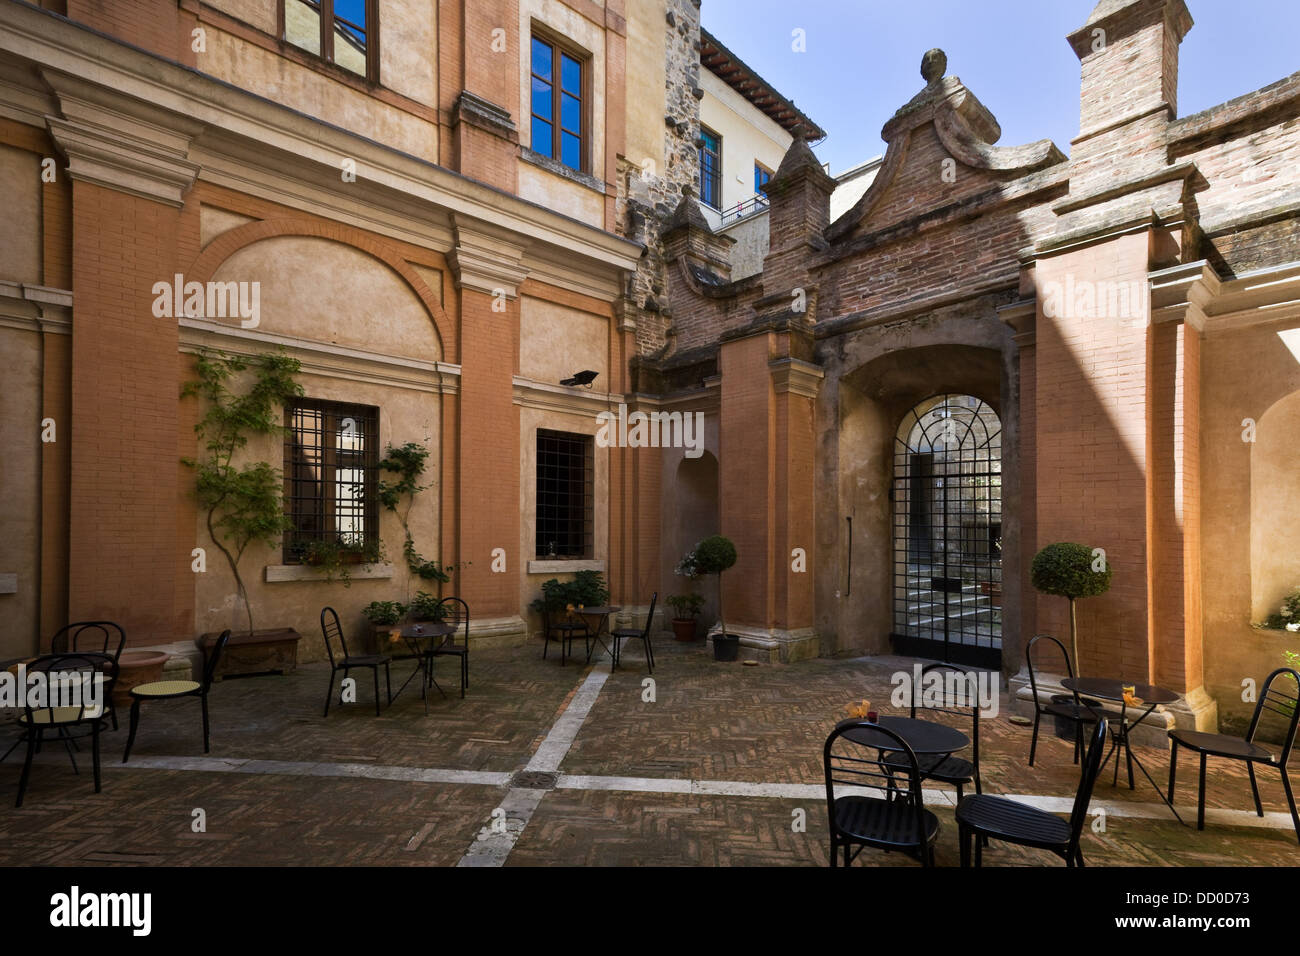 Detail of inner courtyard of Italian Renaissance palazzo, with ...